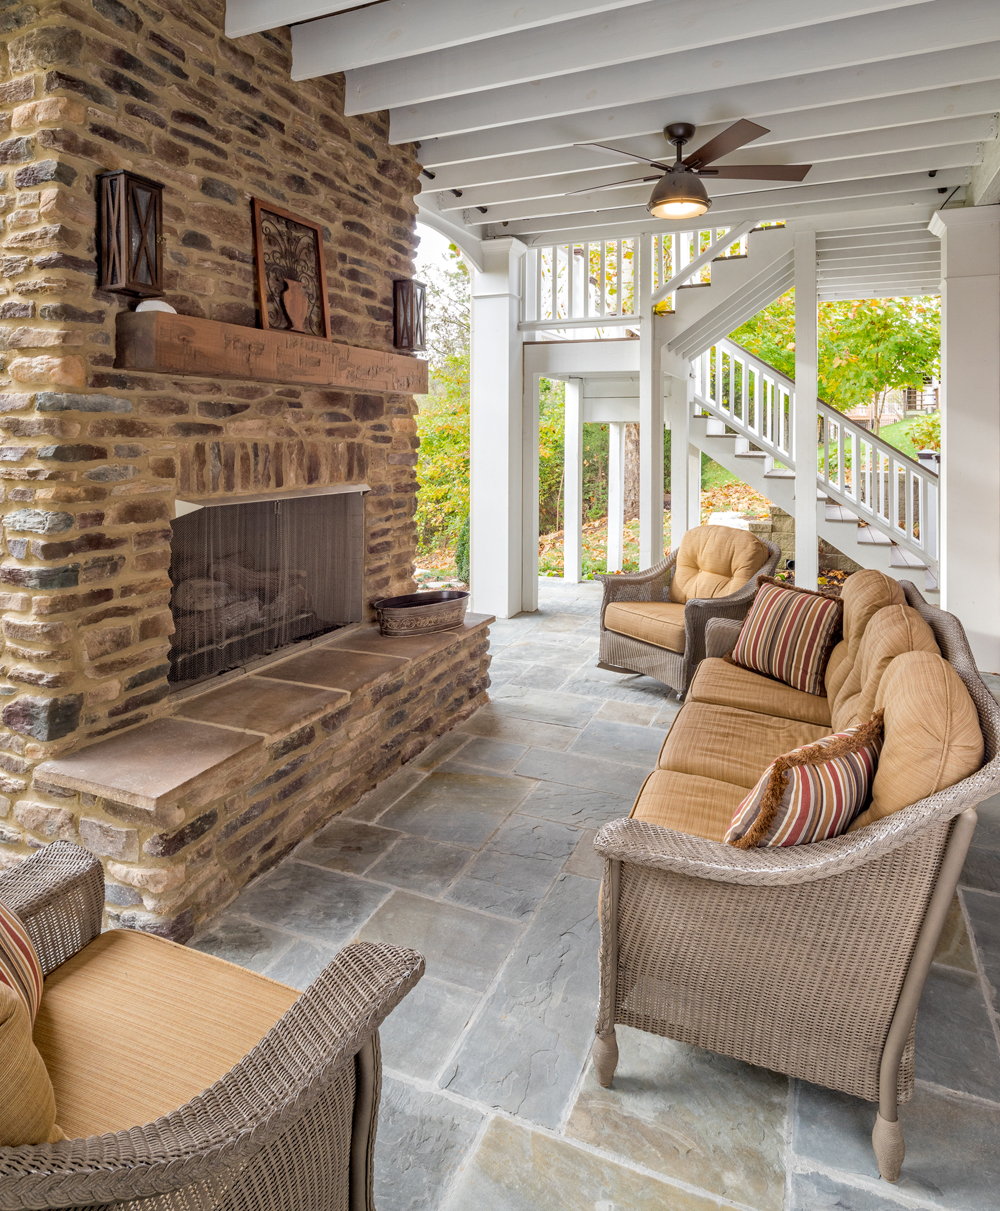 Porch Vs Deck Which Is The More Befitting For Your Home: One Of These Things Is Not Like The Other One At This